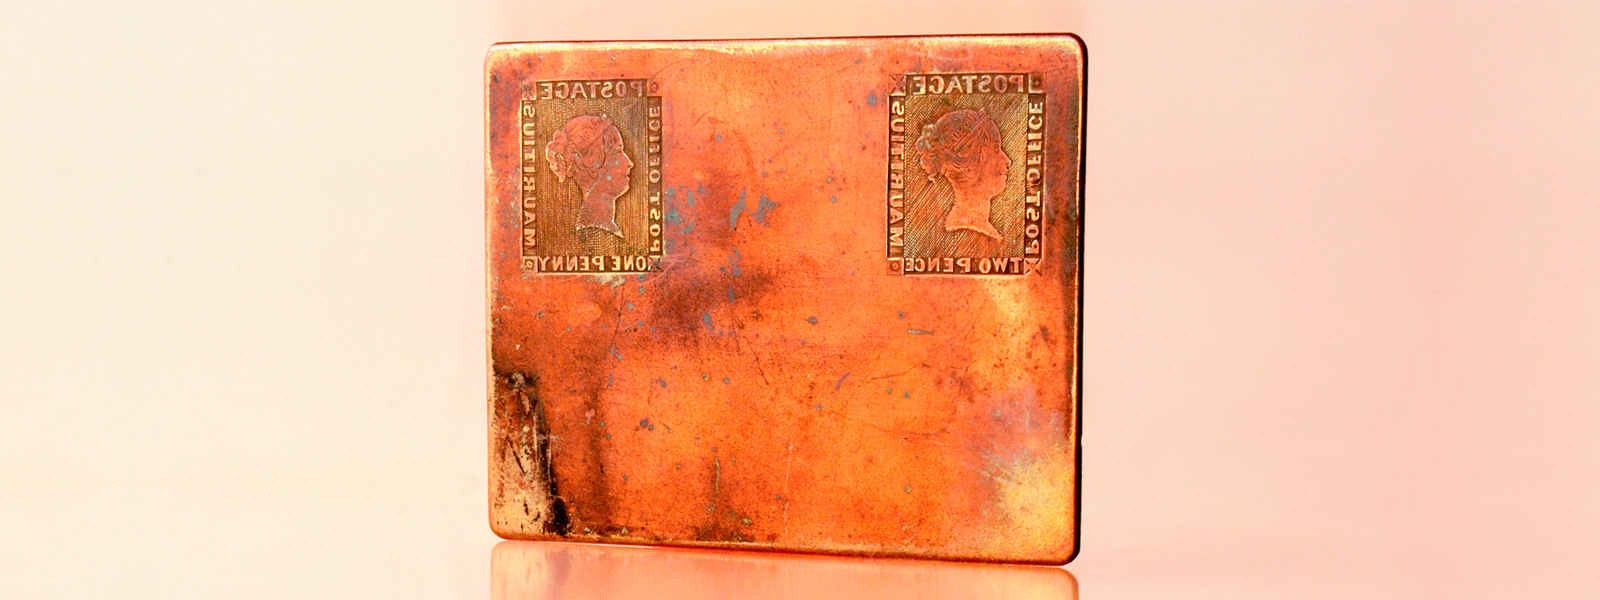 The Mauritius printing plate will be exhibited in New York